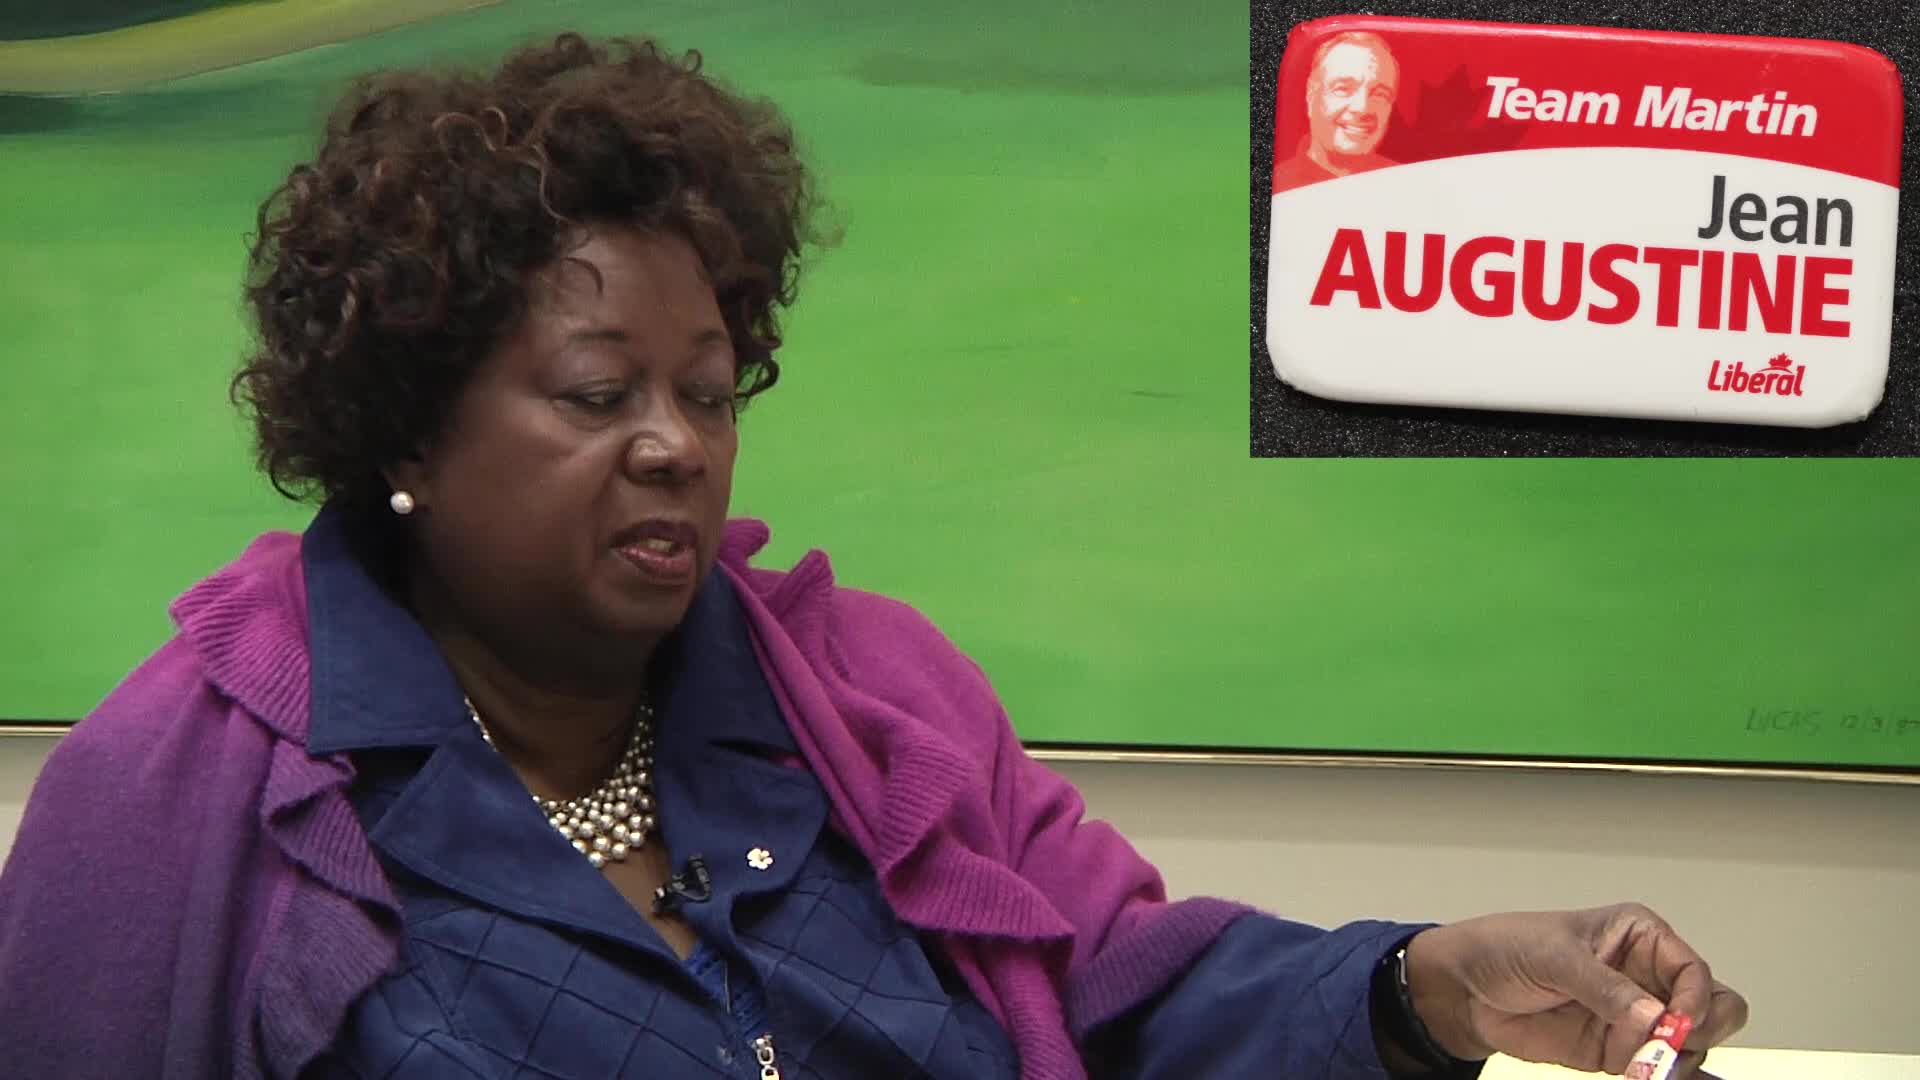 Jean Augustine interview: Team Martin Jean Augustine button